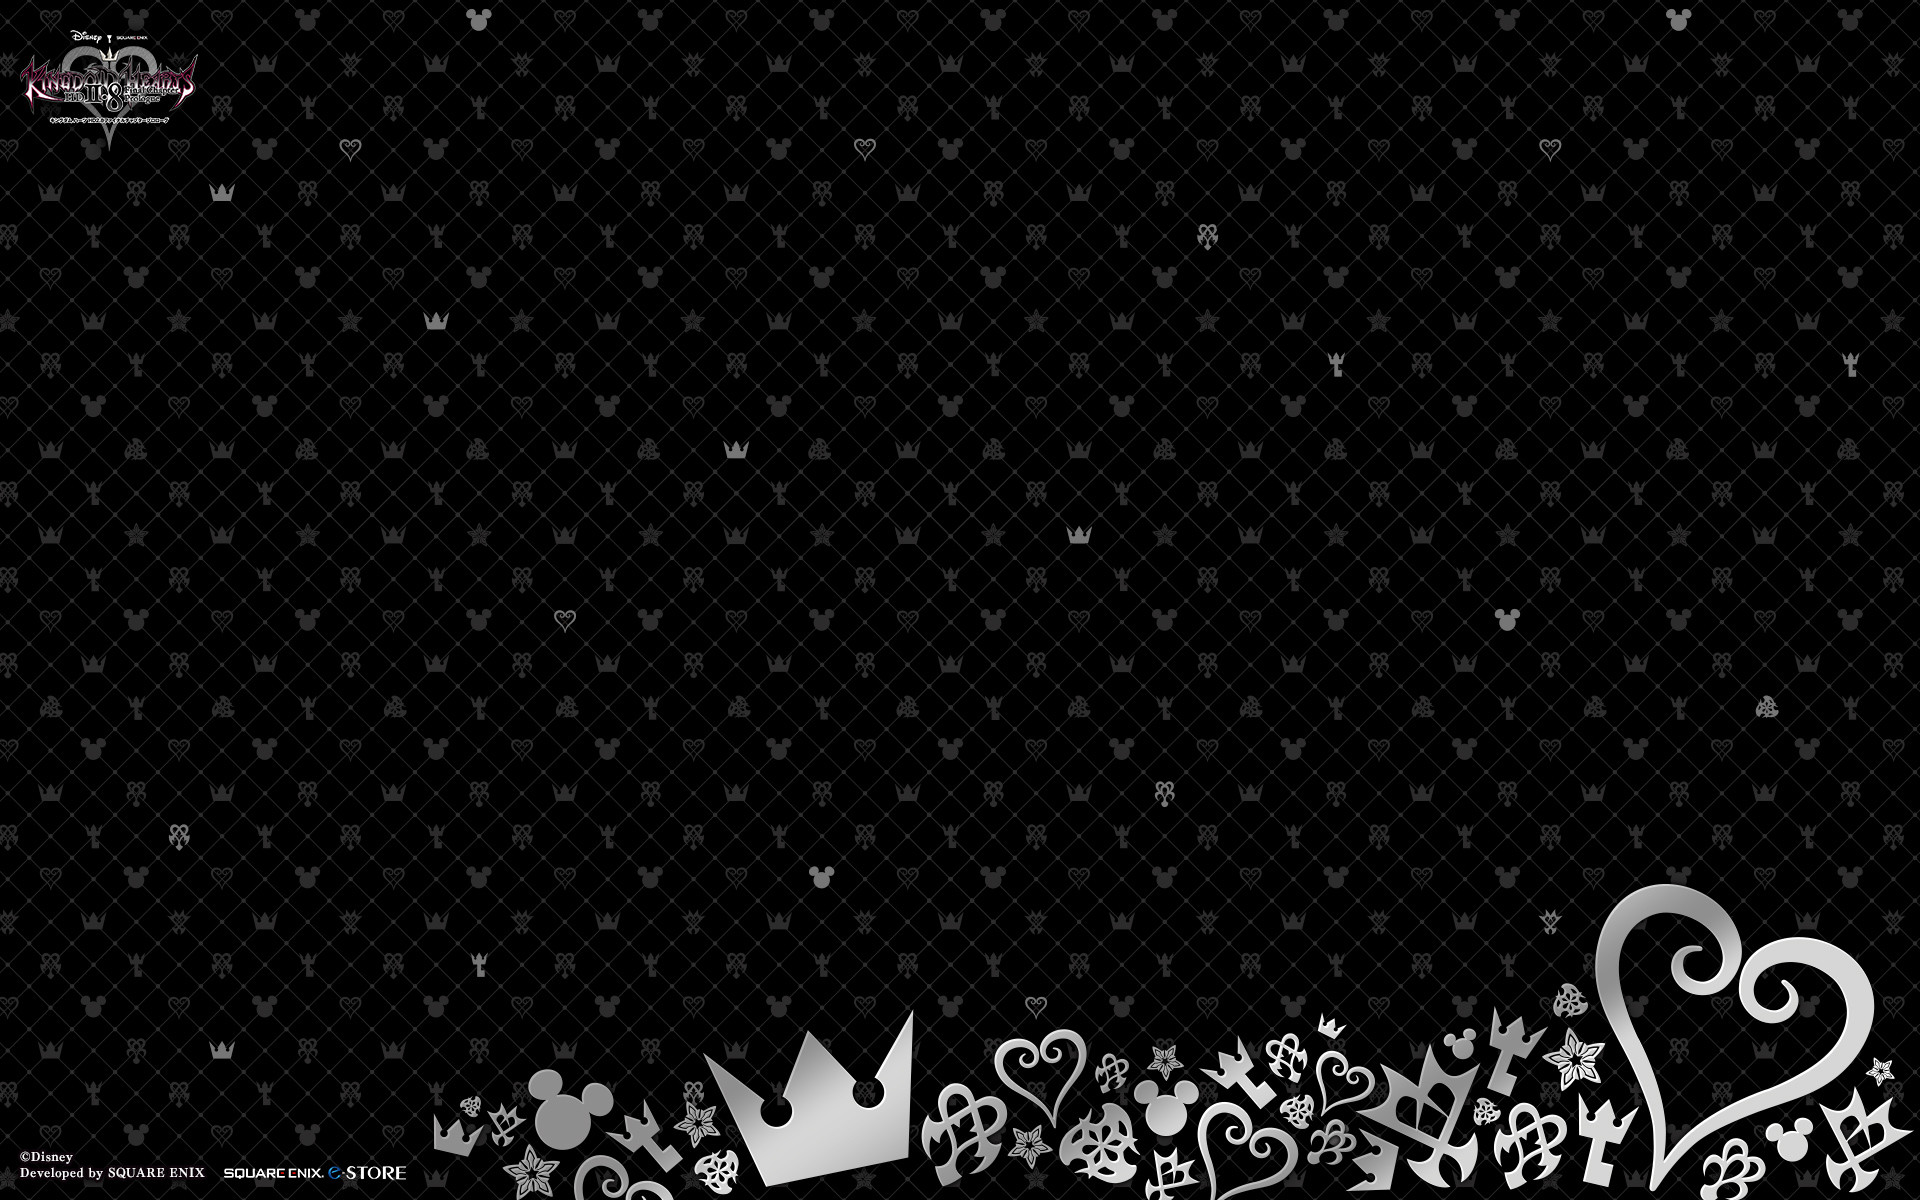 Square Enix releases KINGDOM HEARTS 2.8 PC wallpapers